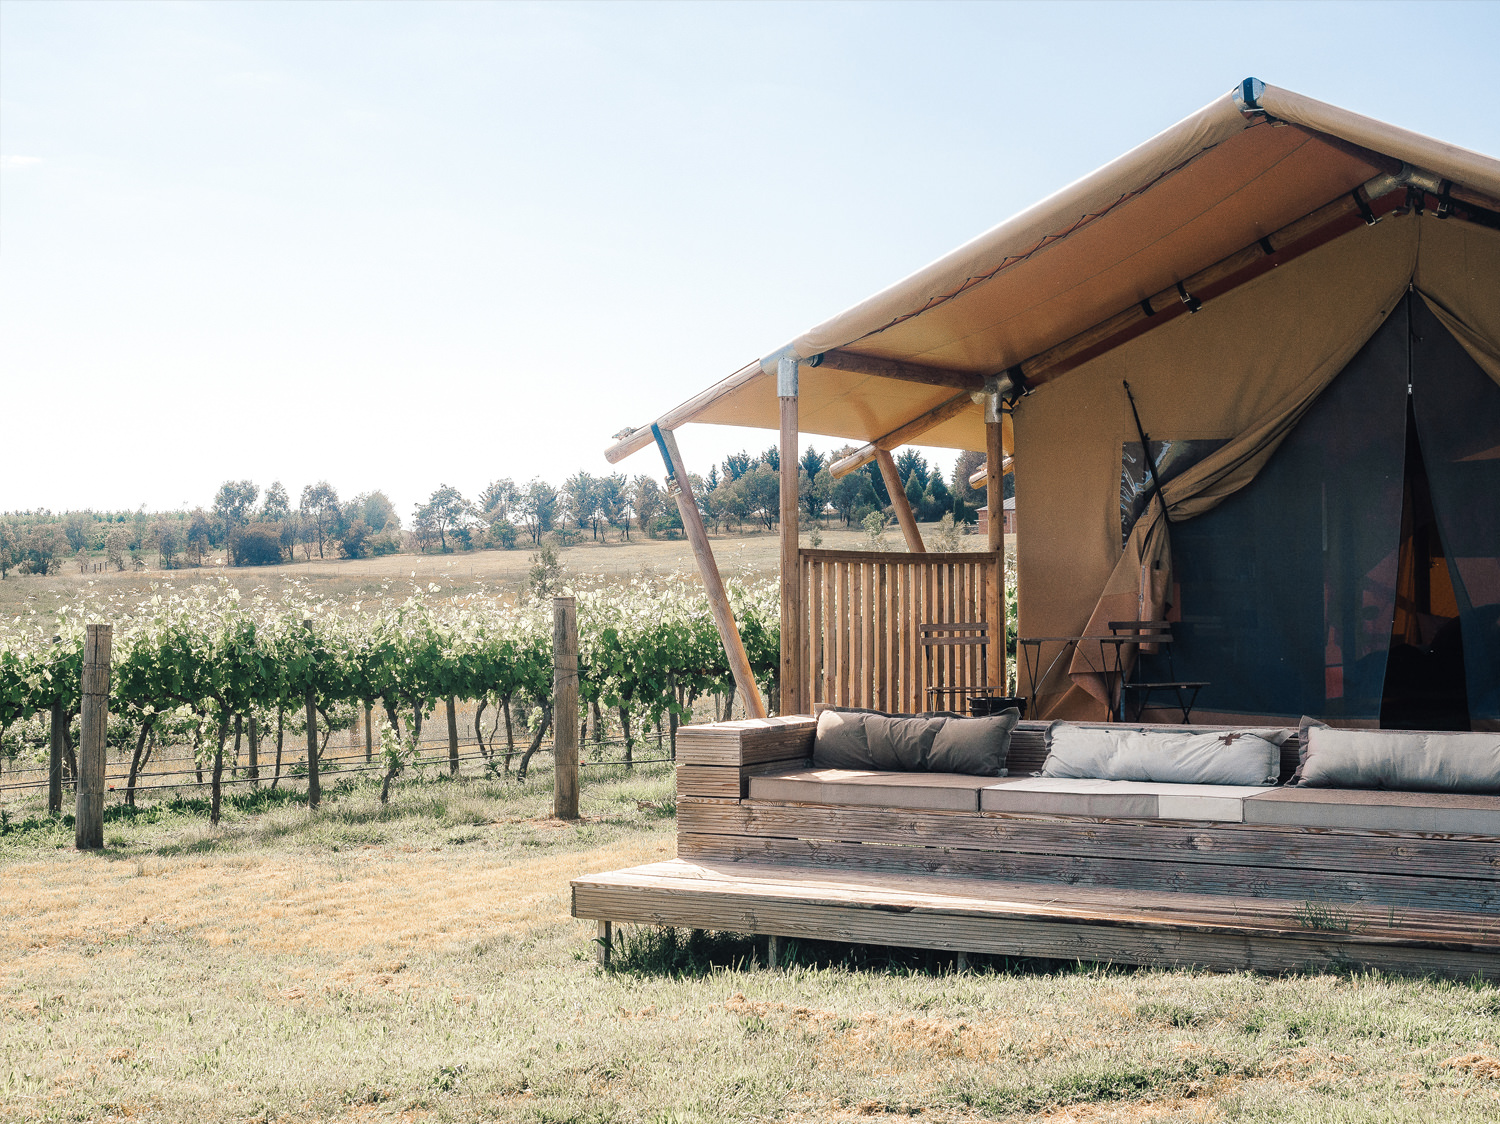 Travel_Australia_Guide_Weekend_Destination_Hotel_Airbnb_Things To Do_Pauline Morrissey_NSW_Orange_Winery_Nashdale Lane_Glamping.jpg